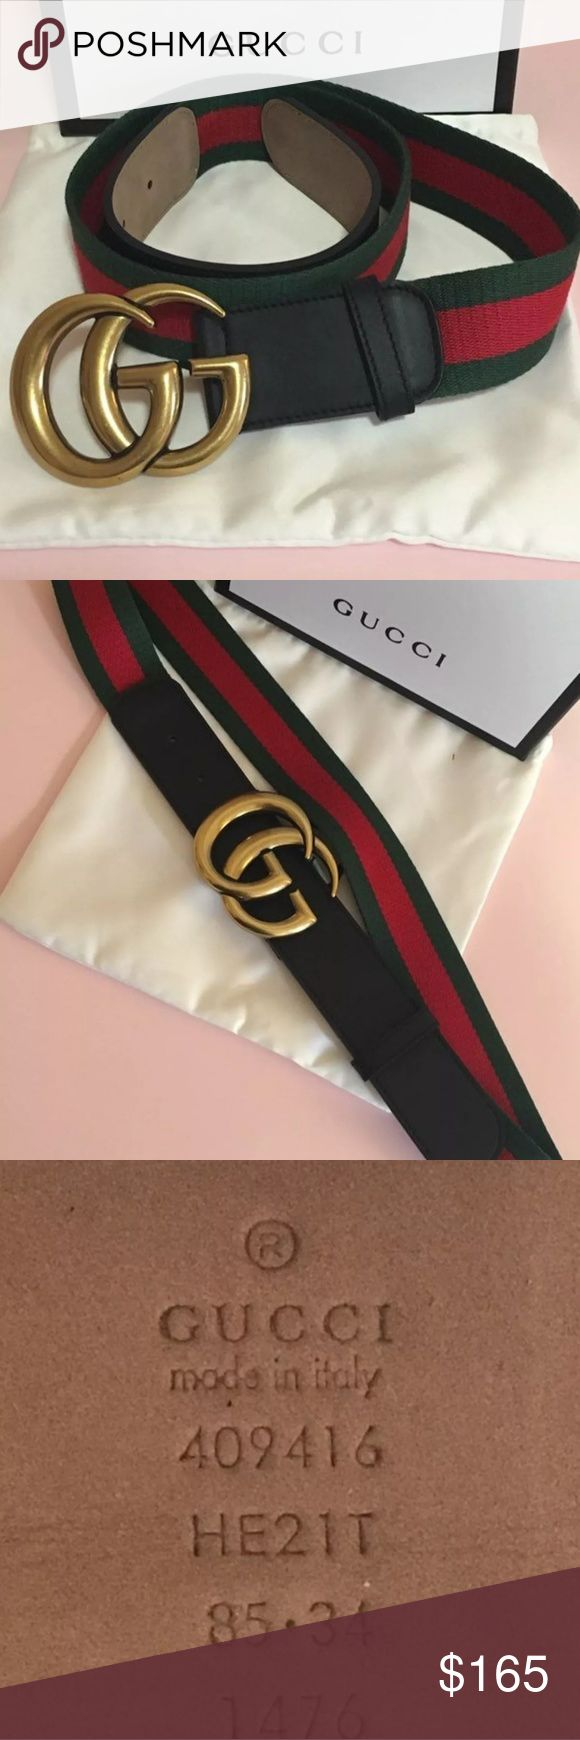 Brand New Gucc Belt Brand new Includes box,dust bag,shopping bag,and tags Brand New $177 w/shipping included For any questions nd to submit order dm me @bossboutique_ on IG Payment via cash app Gucci Accessories Belts